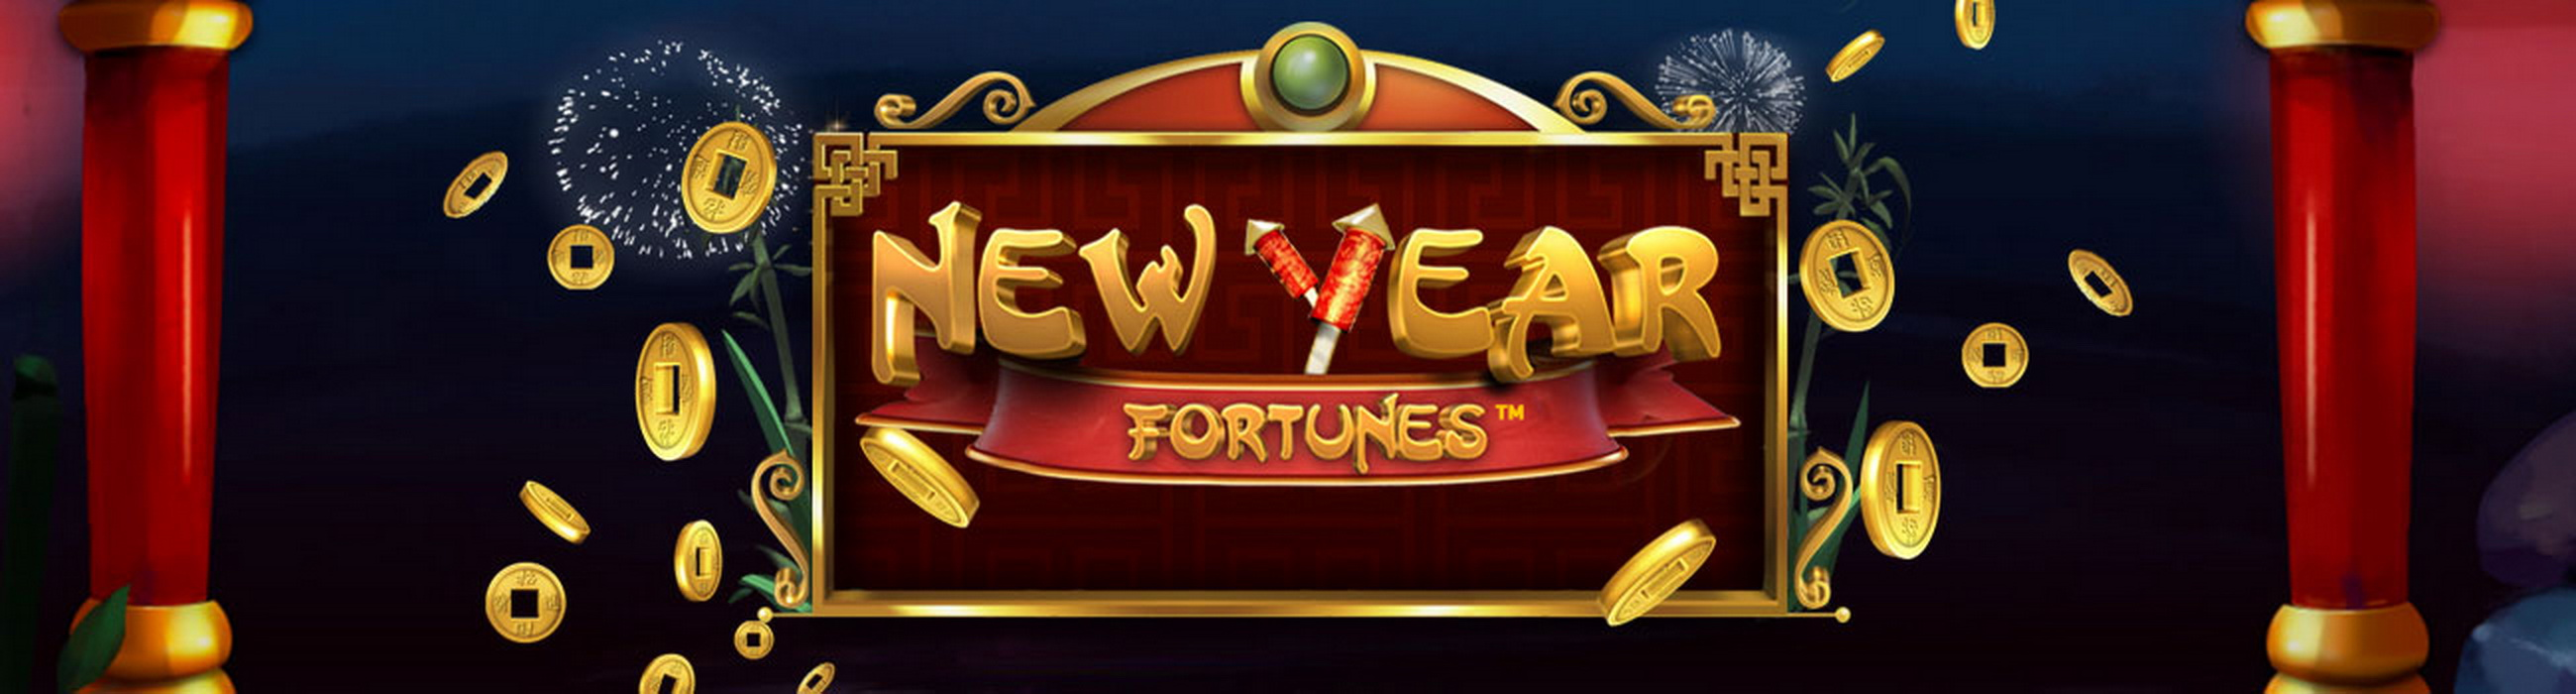 Se New Year Fortunes Online Slot Demo Game, Mobilots